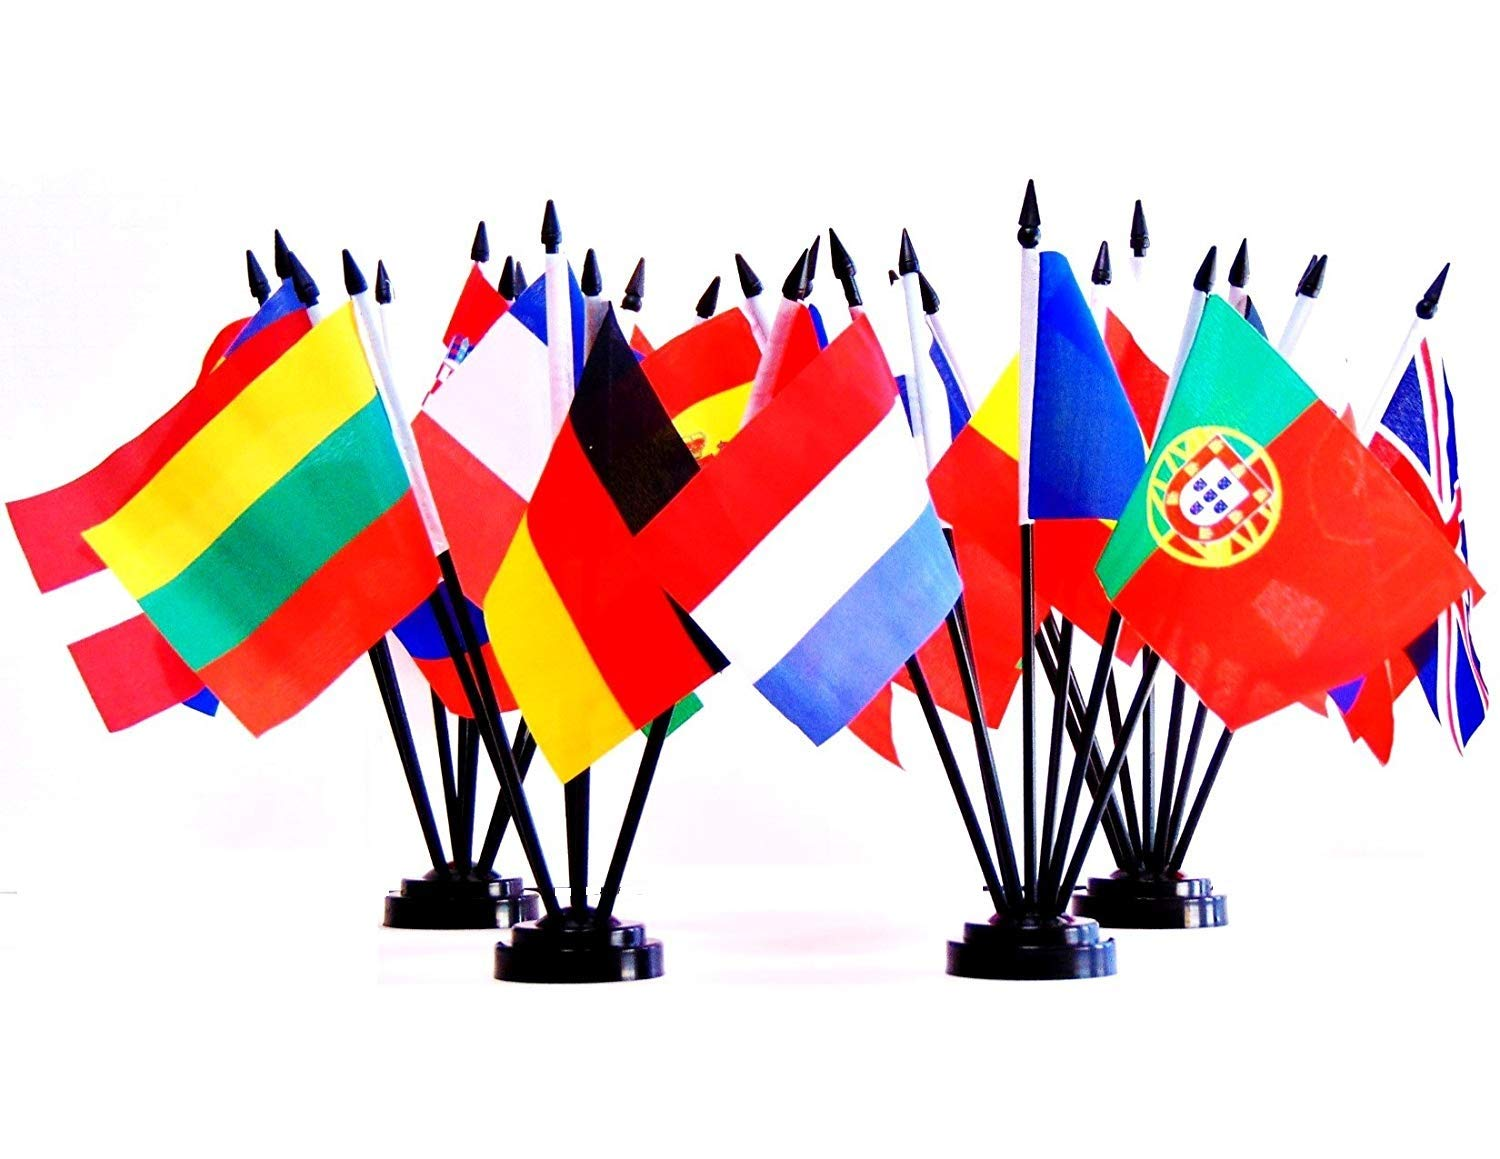 European Union (EU) World Flag Set with BASES-28 Polyester 4''x6'' Flags, One Flag for Each Country in The European Union (EU) Flag Centerpiece, 4x6 Miniature Desk & Table Flags, Small Mini Stick Flags by World Flags Direct